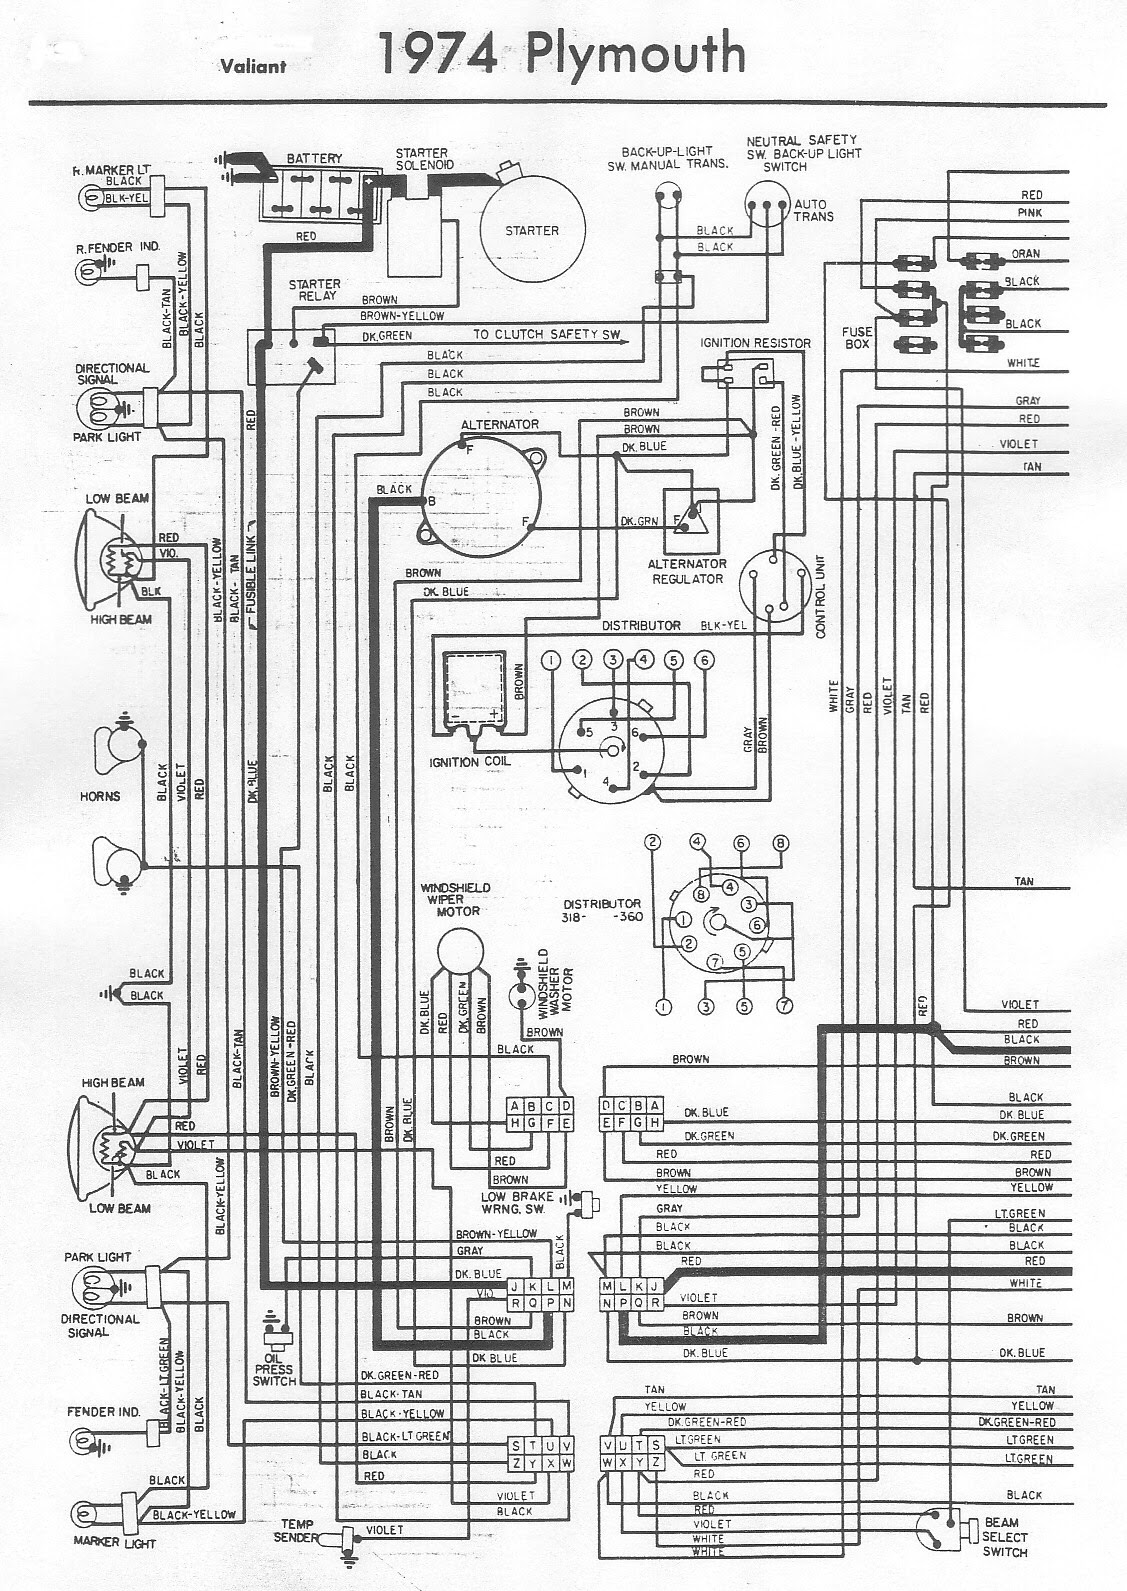 452d60 1948 Ford F1 Wiring Harness Diagram Wiring Diagram Library